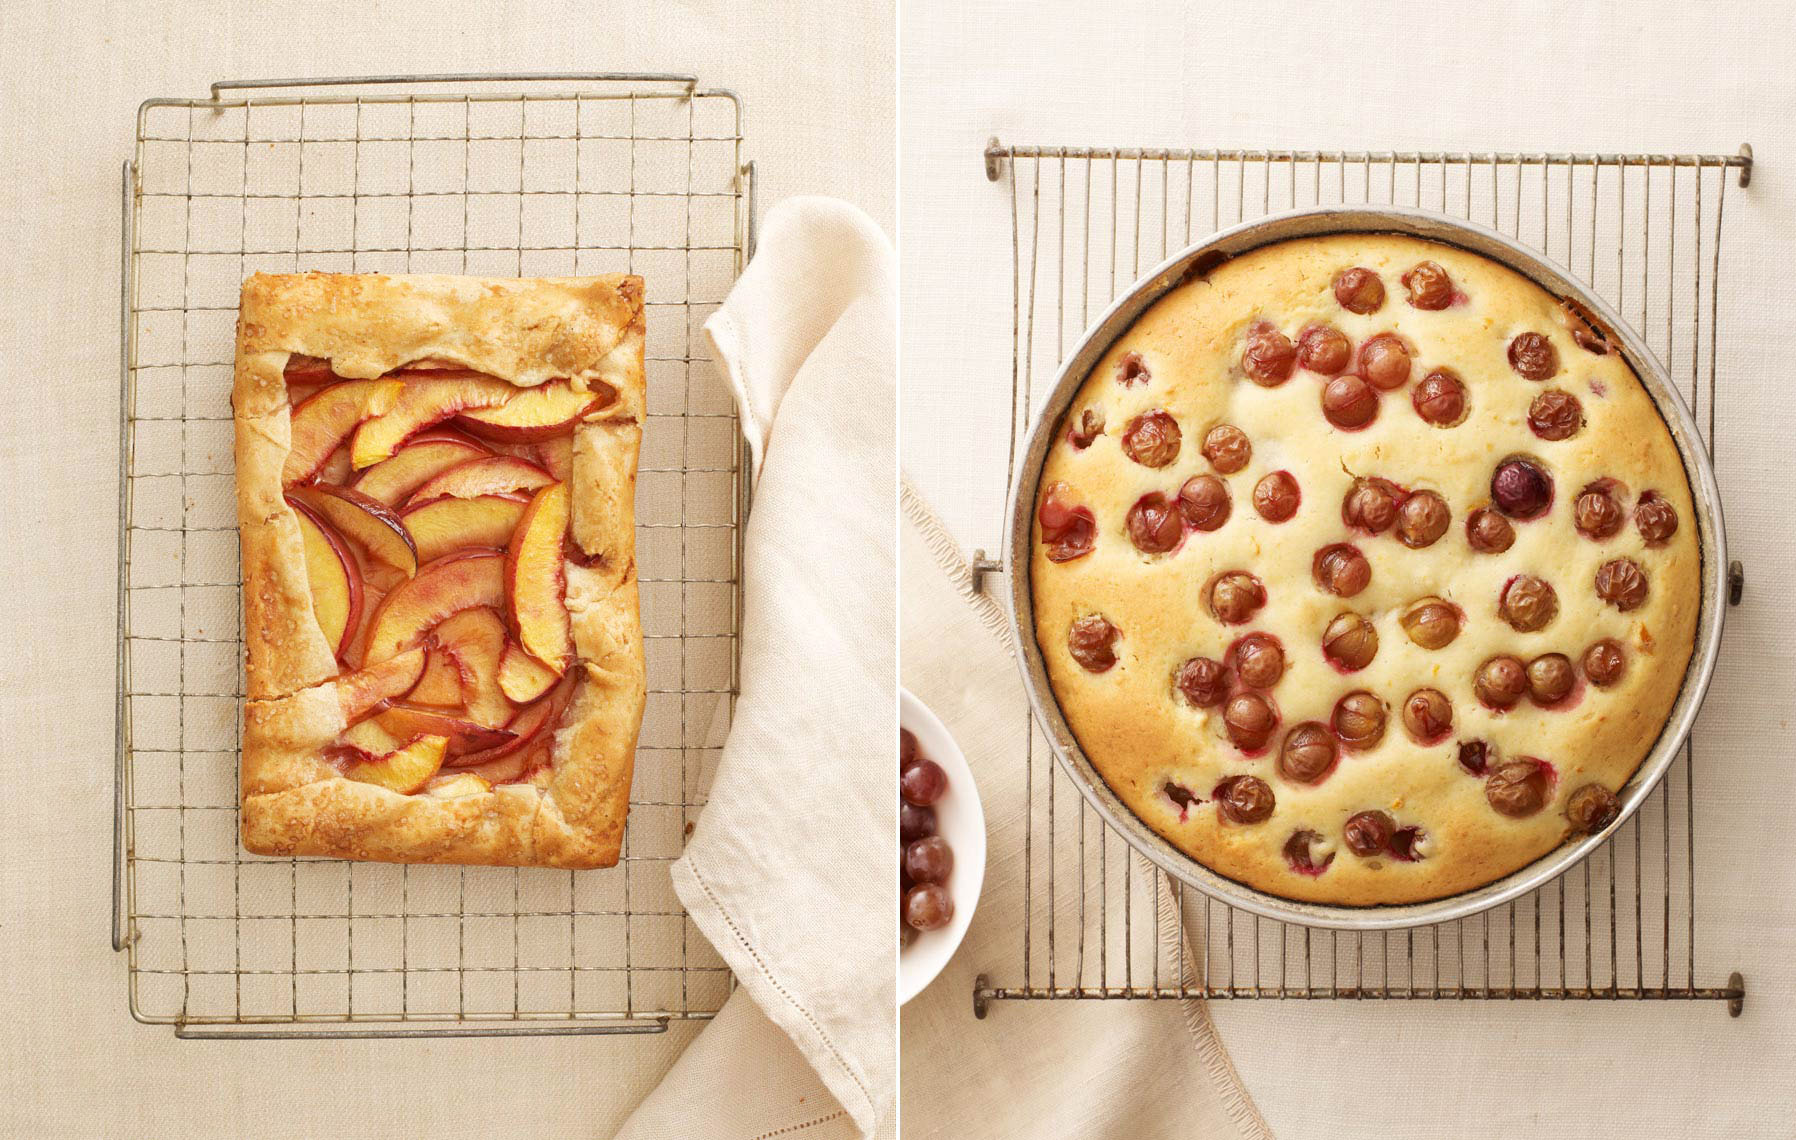 Nectarine Galette & Winemakers Cake